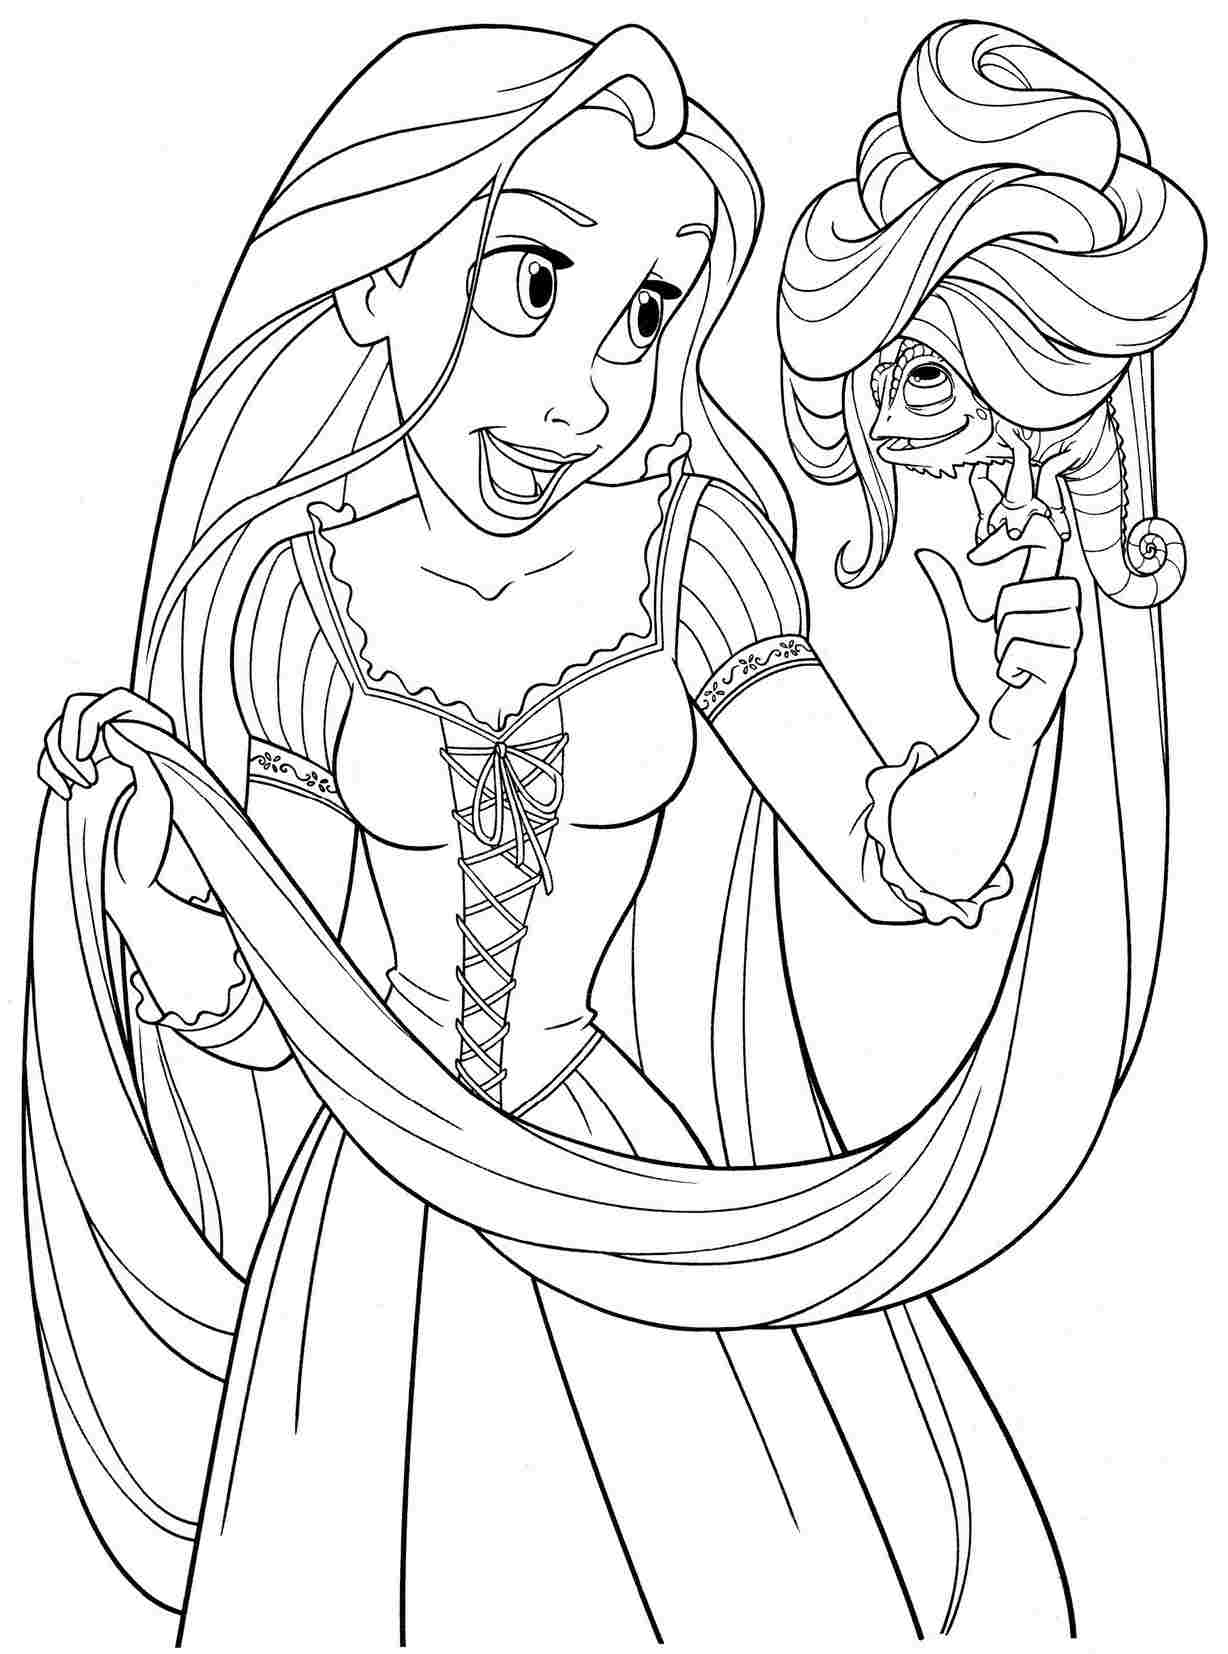 Disney Princess Printable Coloring Pages For Girls Coloring Pages